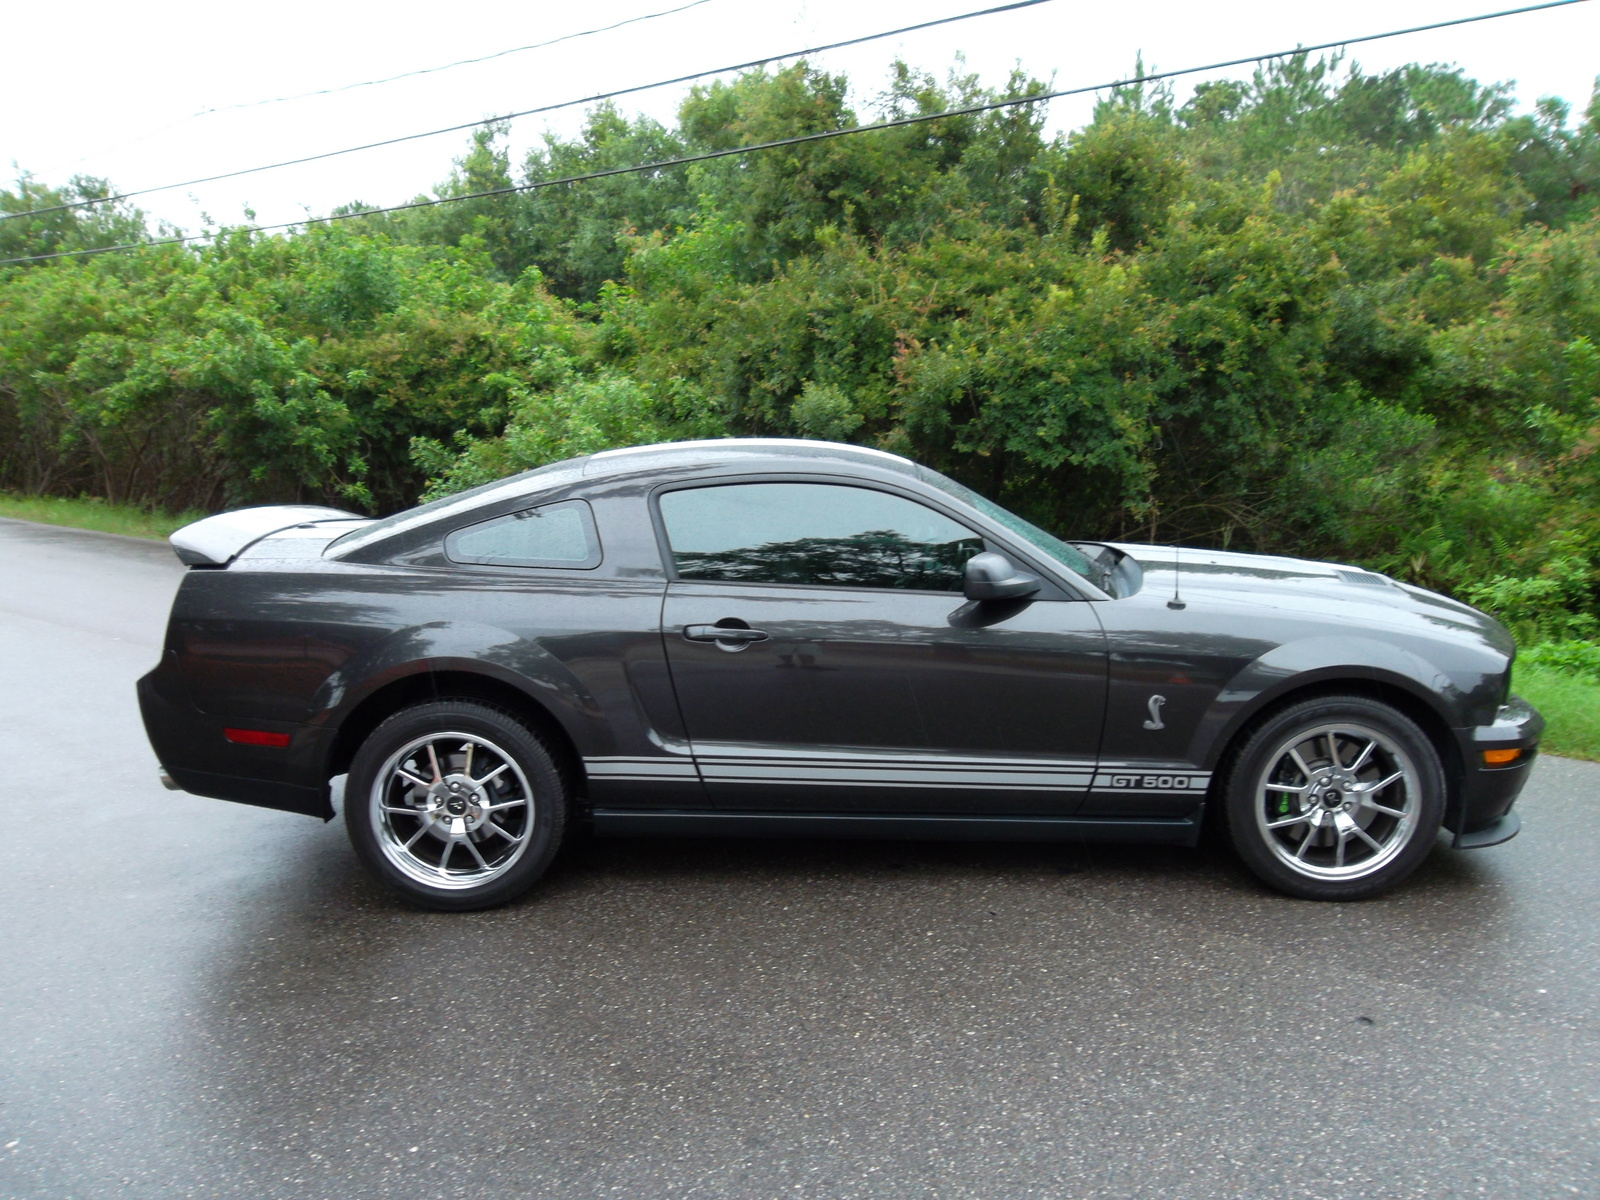 2009 ford mustang shelby gt500 horsepower car autos gallery. Black Bedroom Furniture Sets. Home Design Ideas